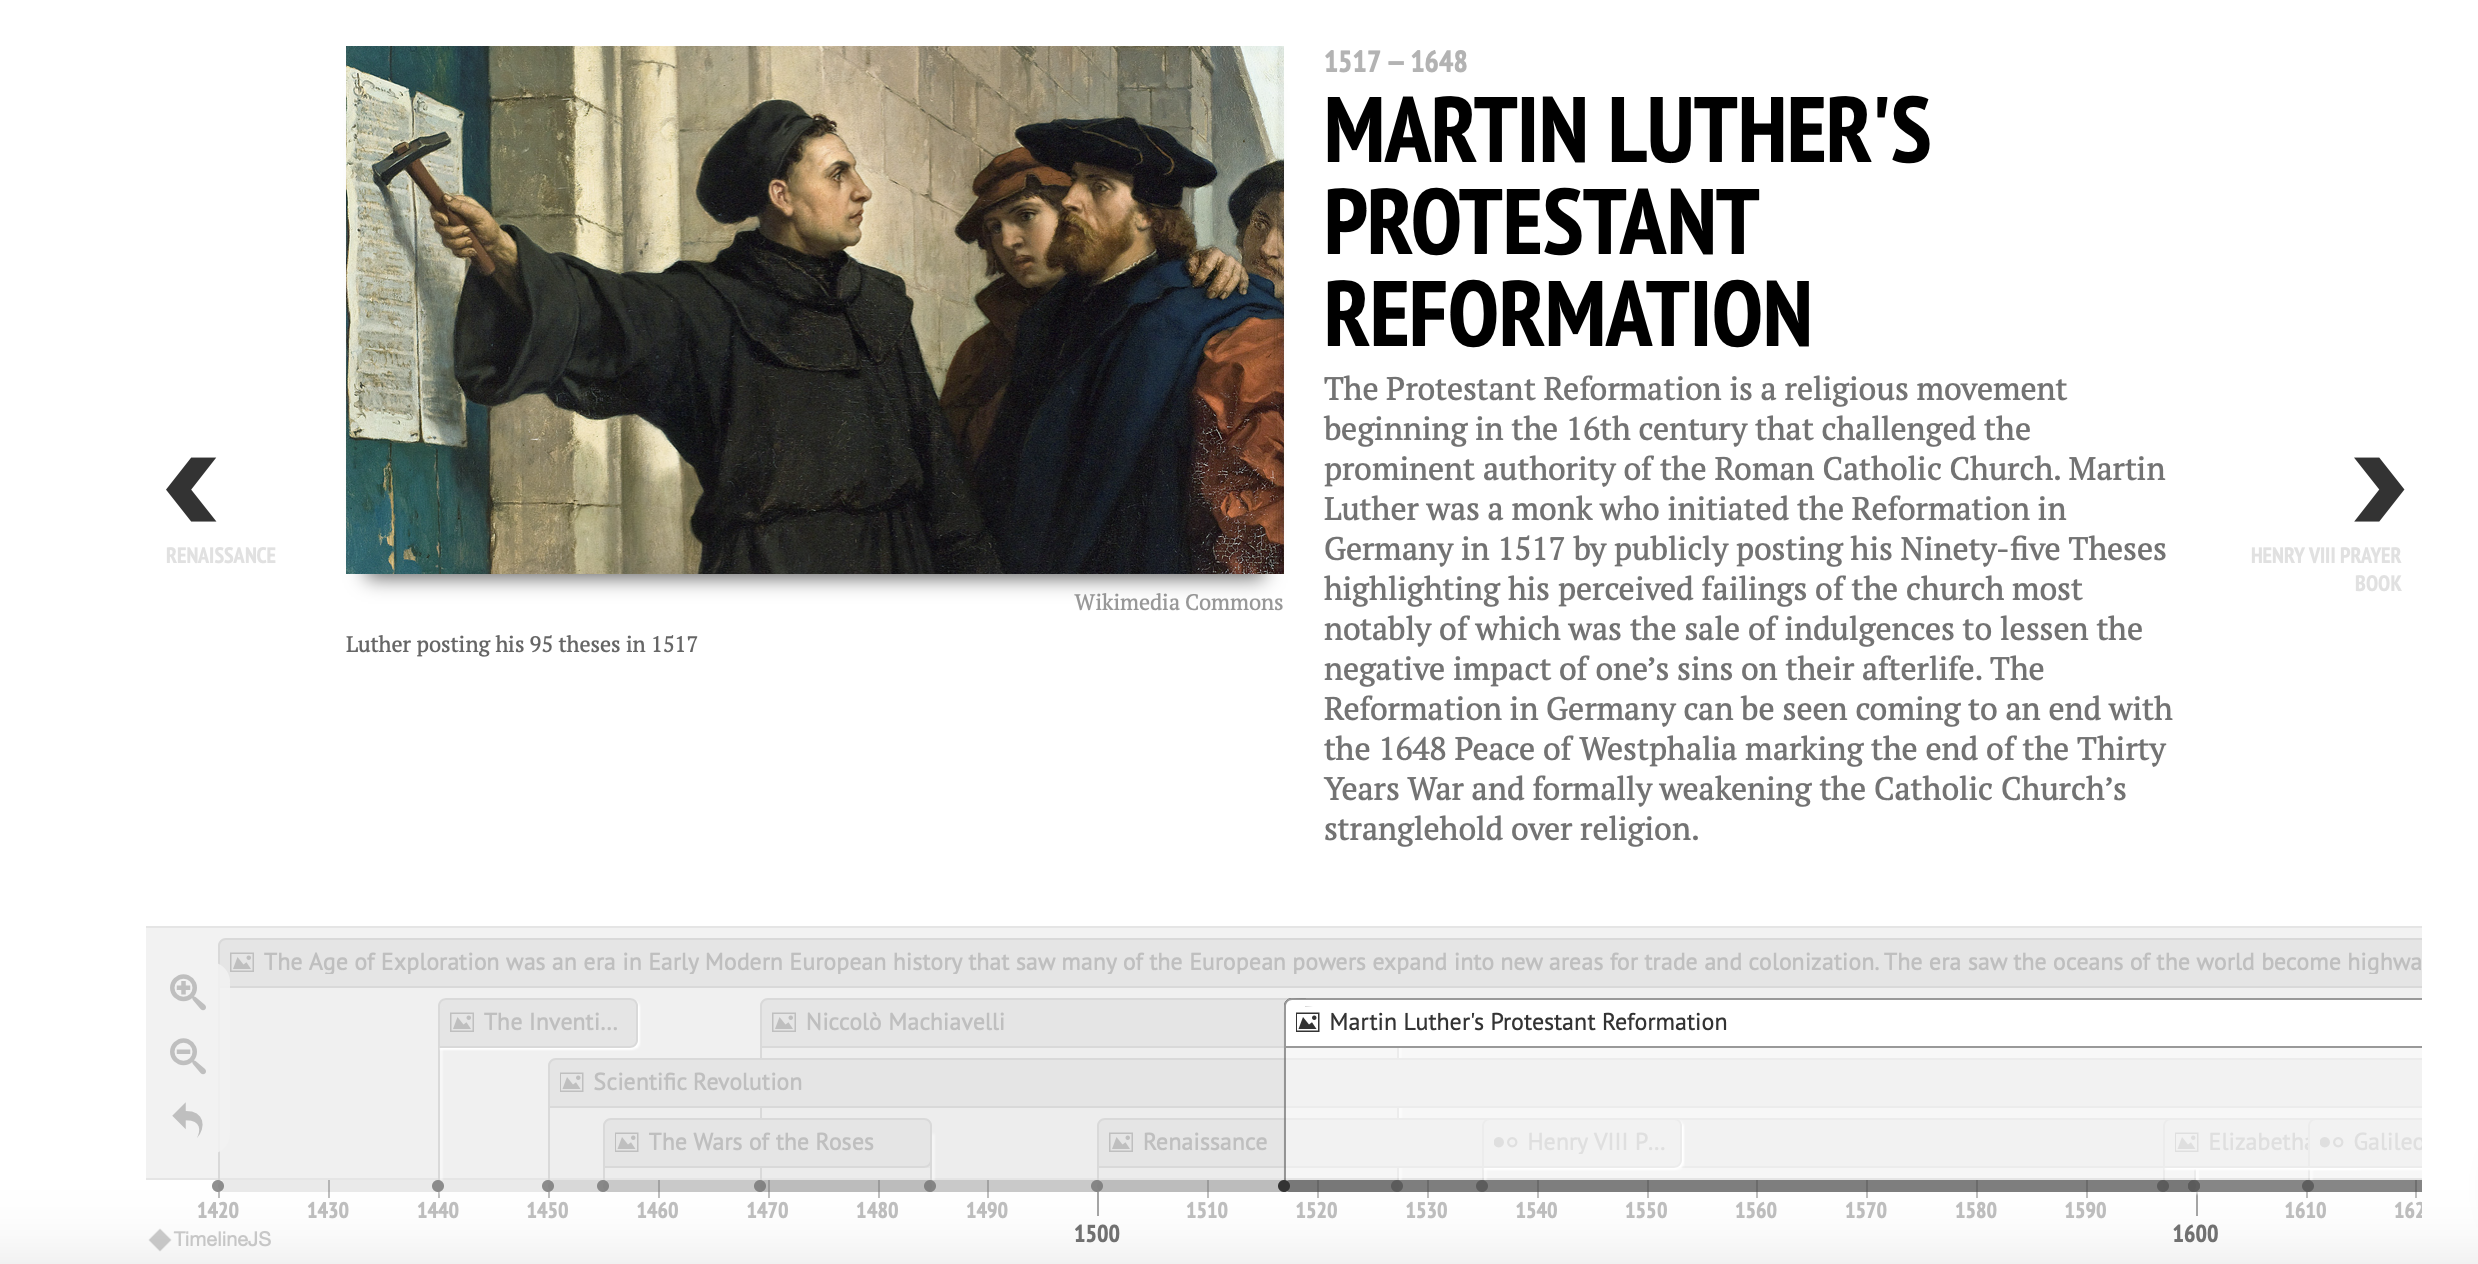 Timeline entry with painting of Martin Luther nailing edicts to a church door.